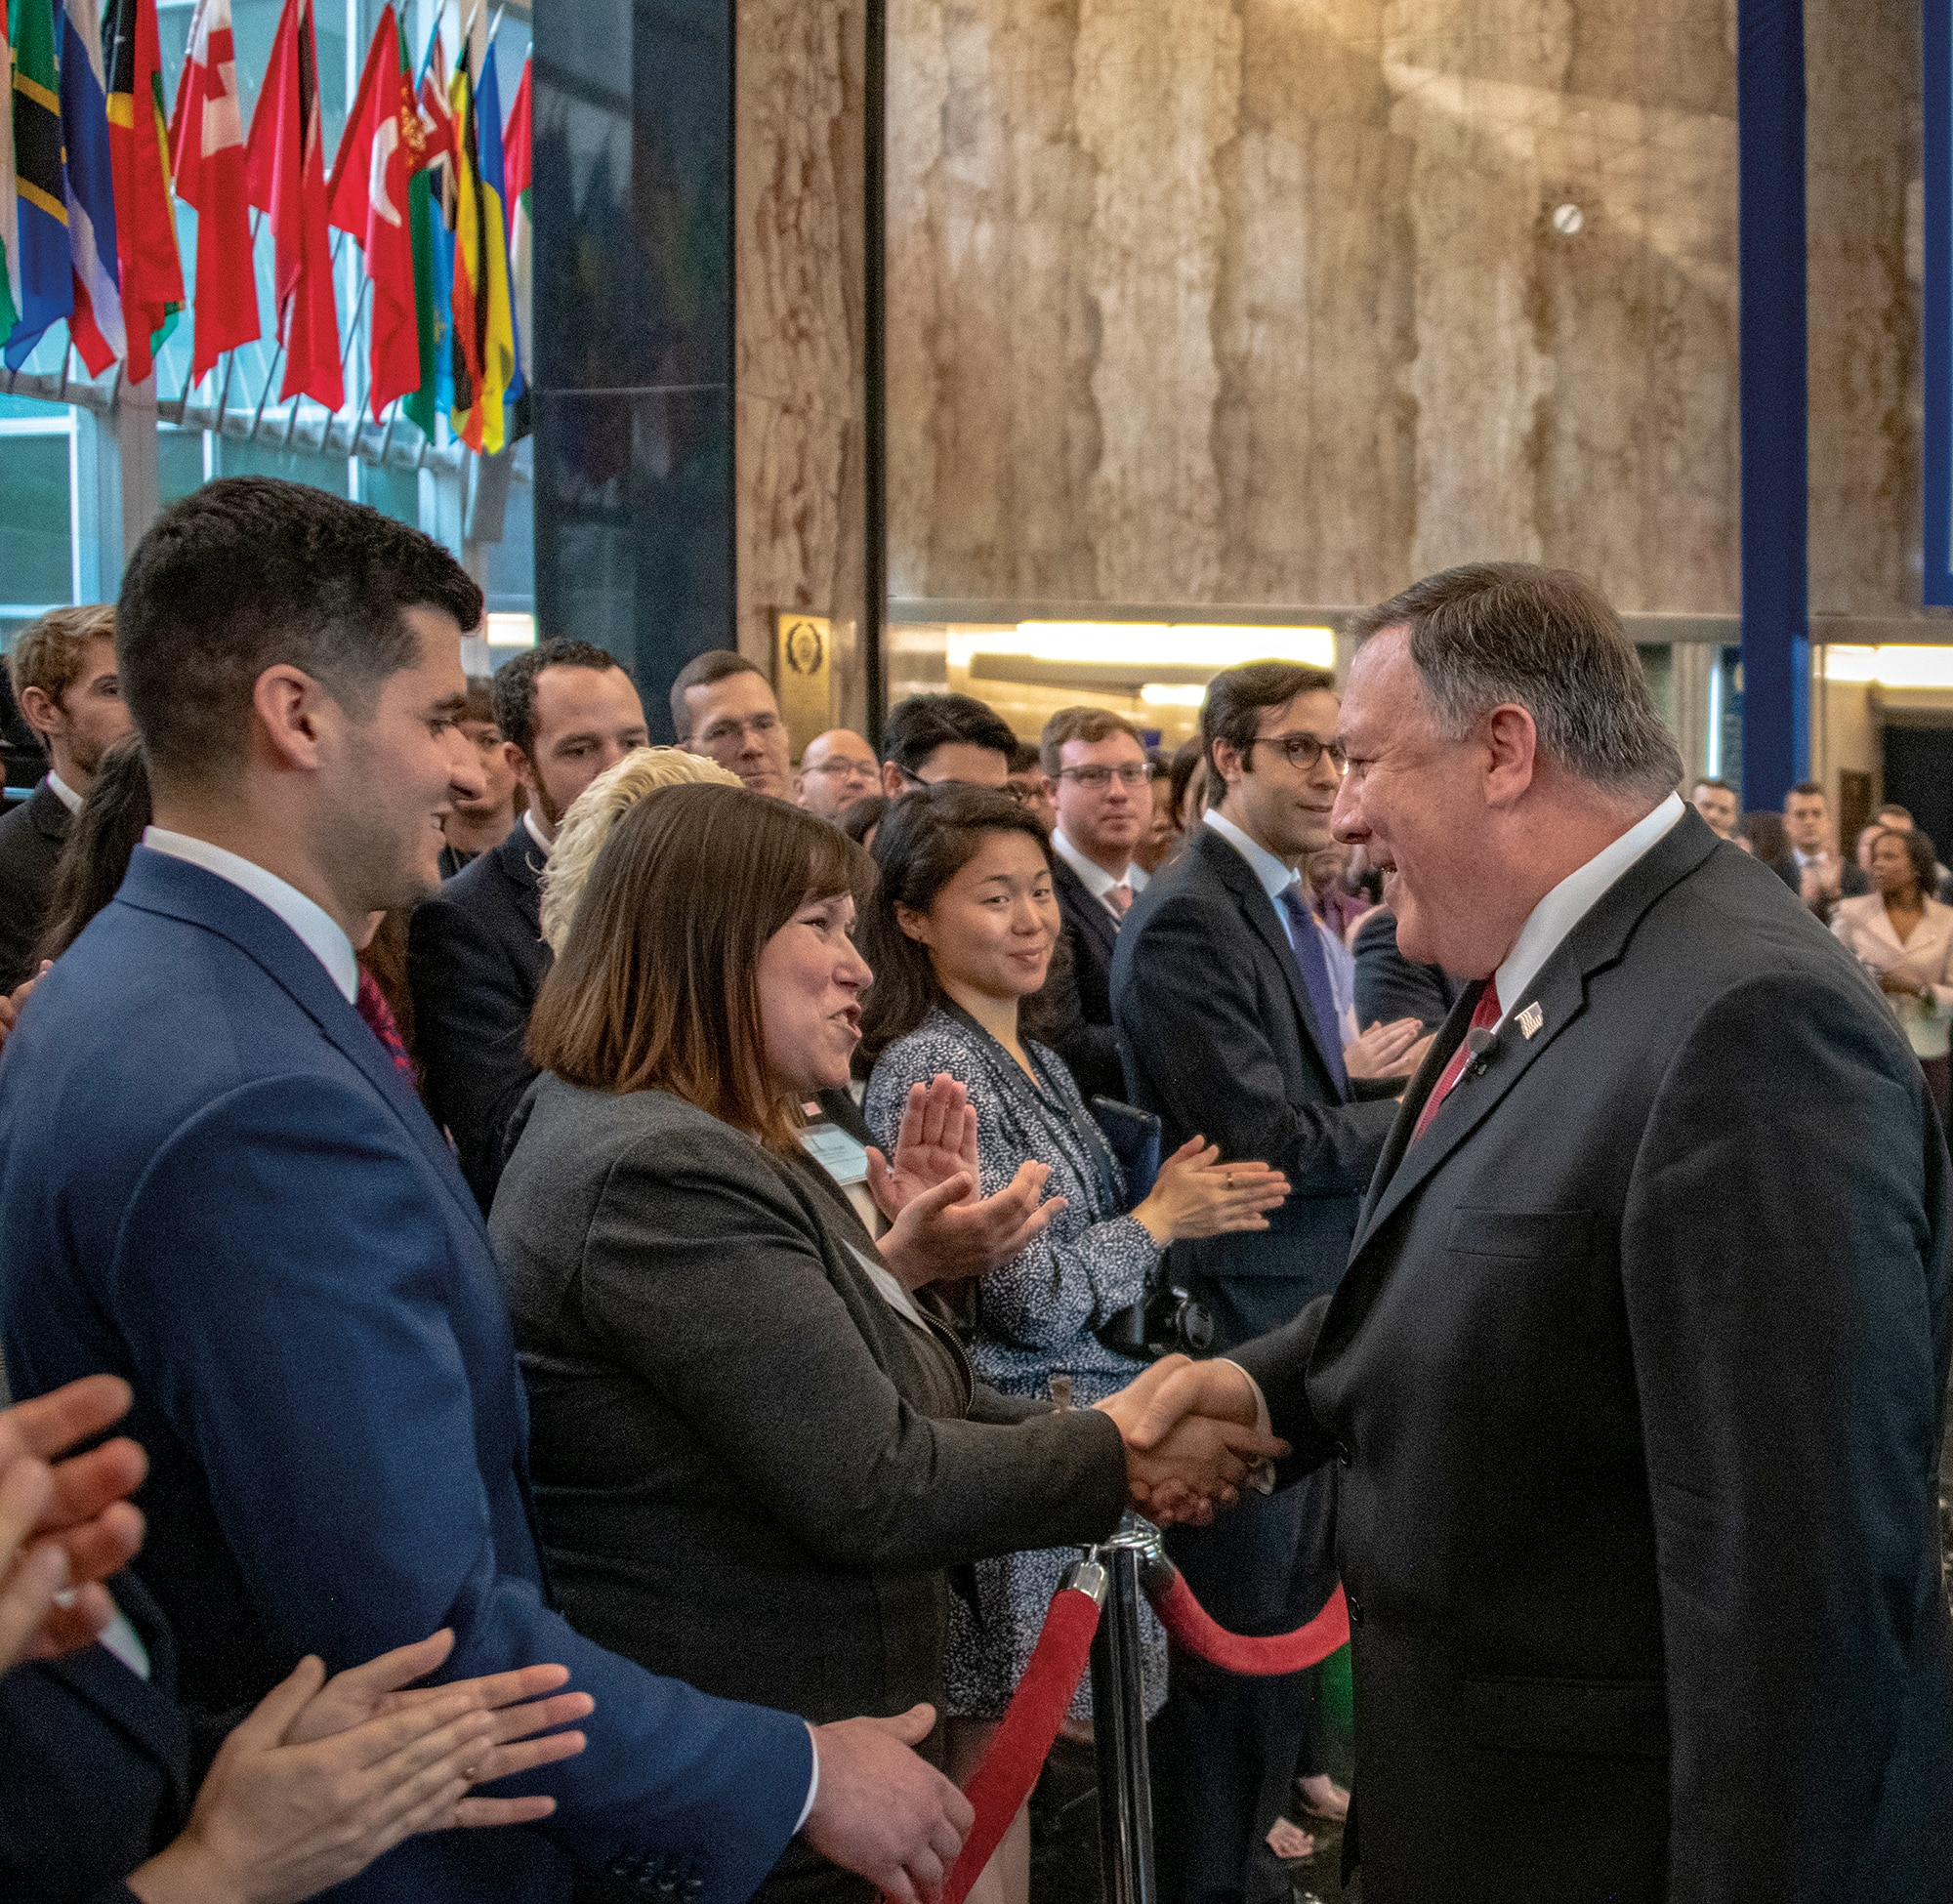 """Photo showing Secretary Pompeo shaking hands with State Department employees after delivering remarks on """"One Team, One Mission, One Future: Introducing our Ethos"""" in Washington, D.C., April 26, 2019. [Department of State]"""